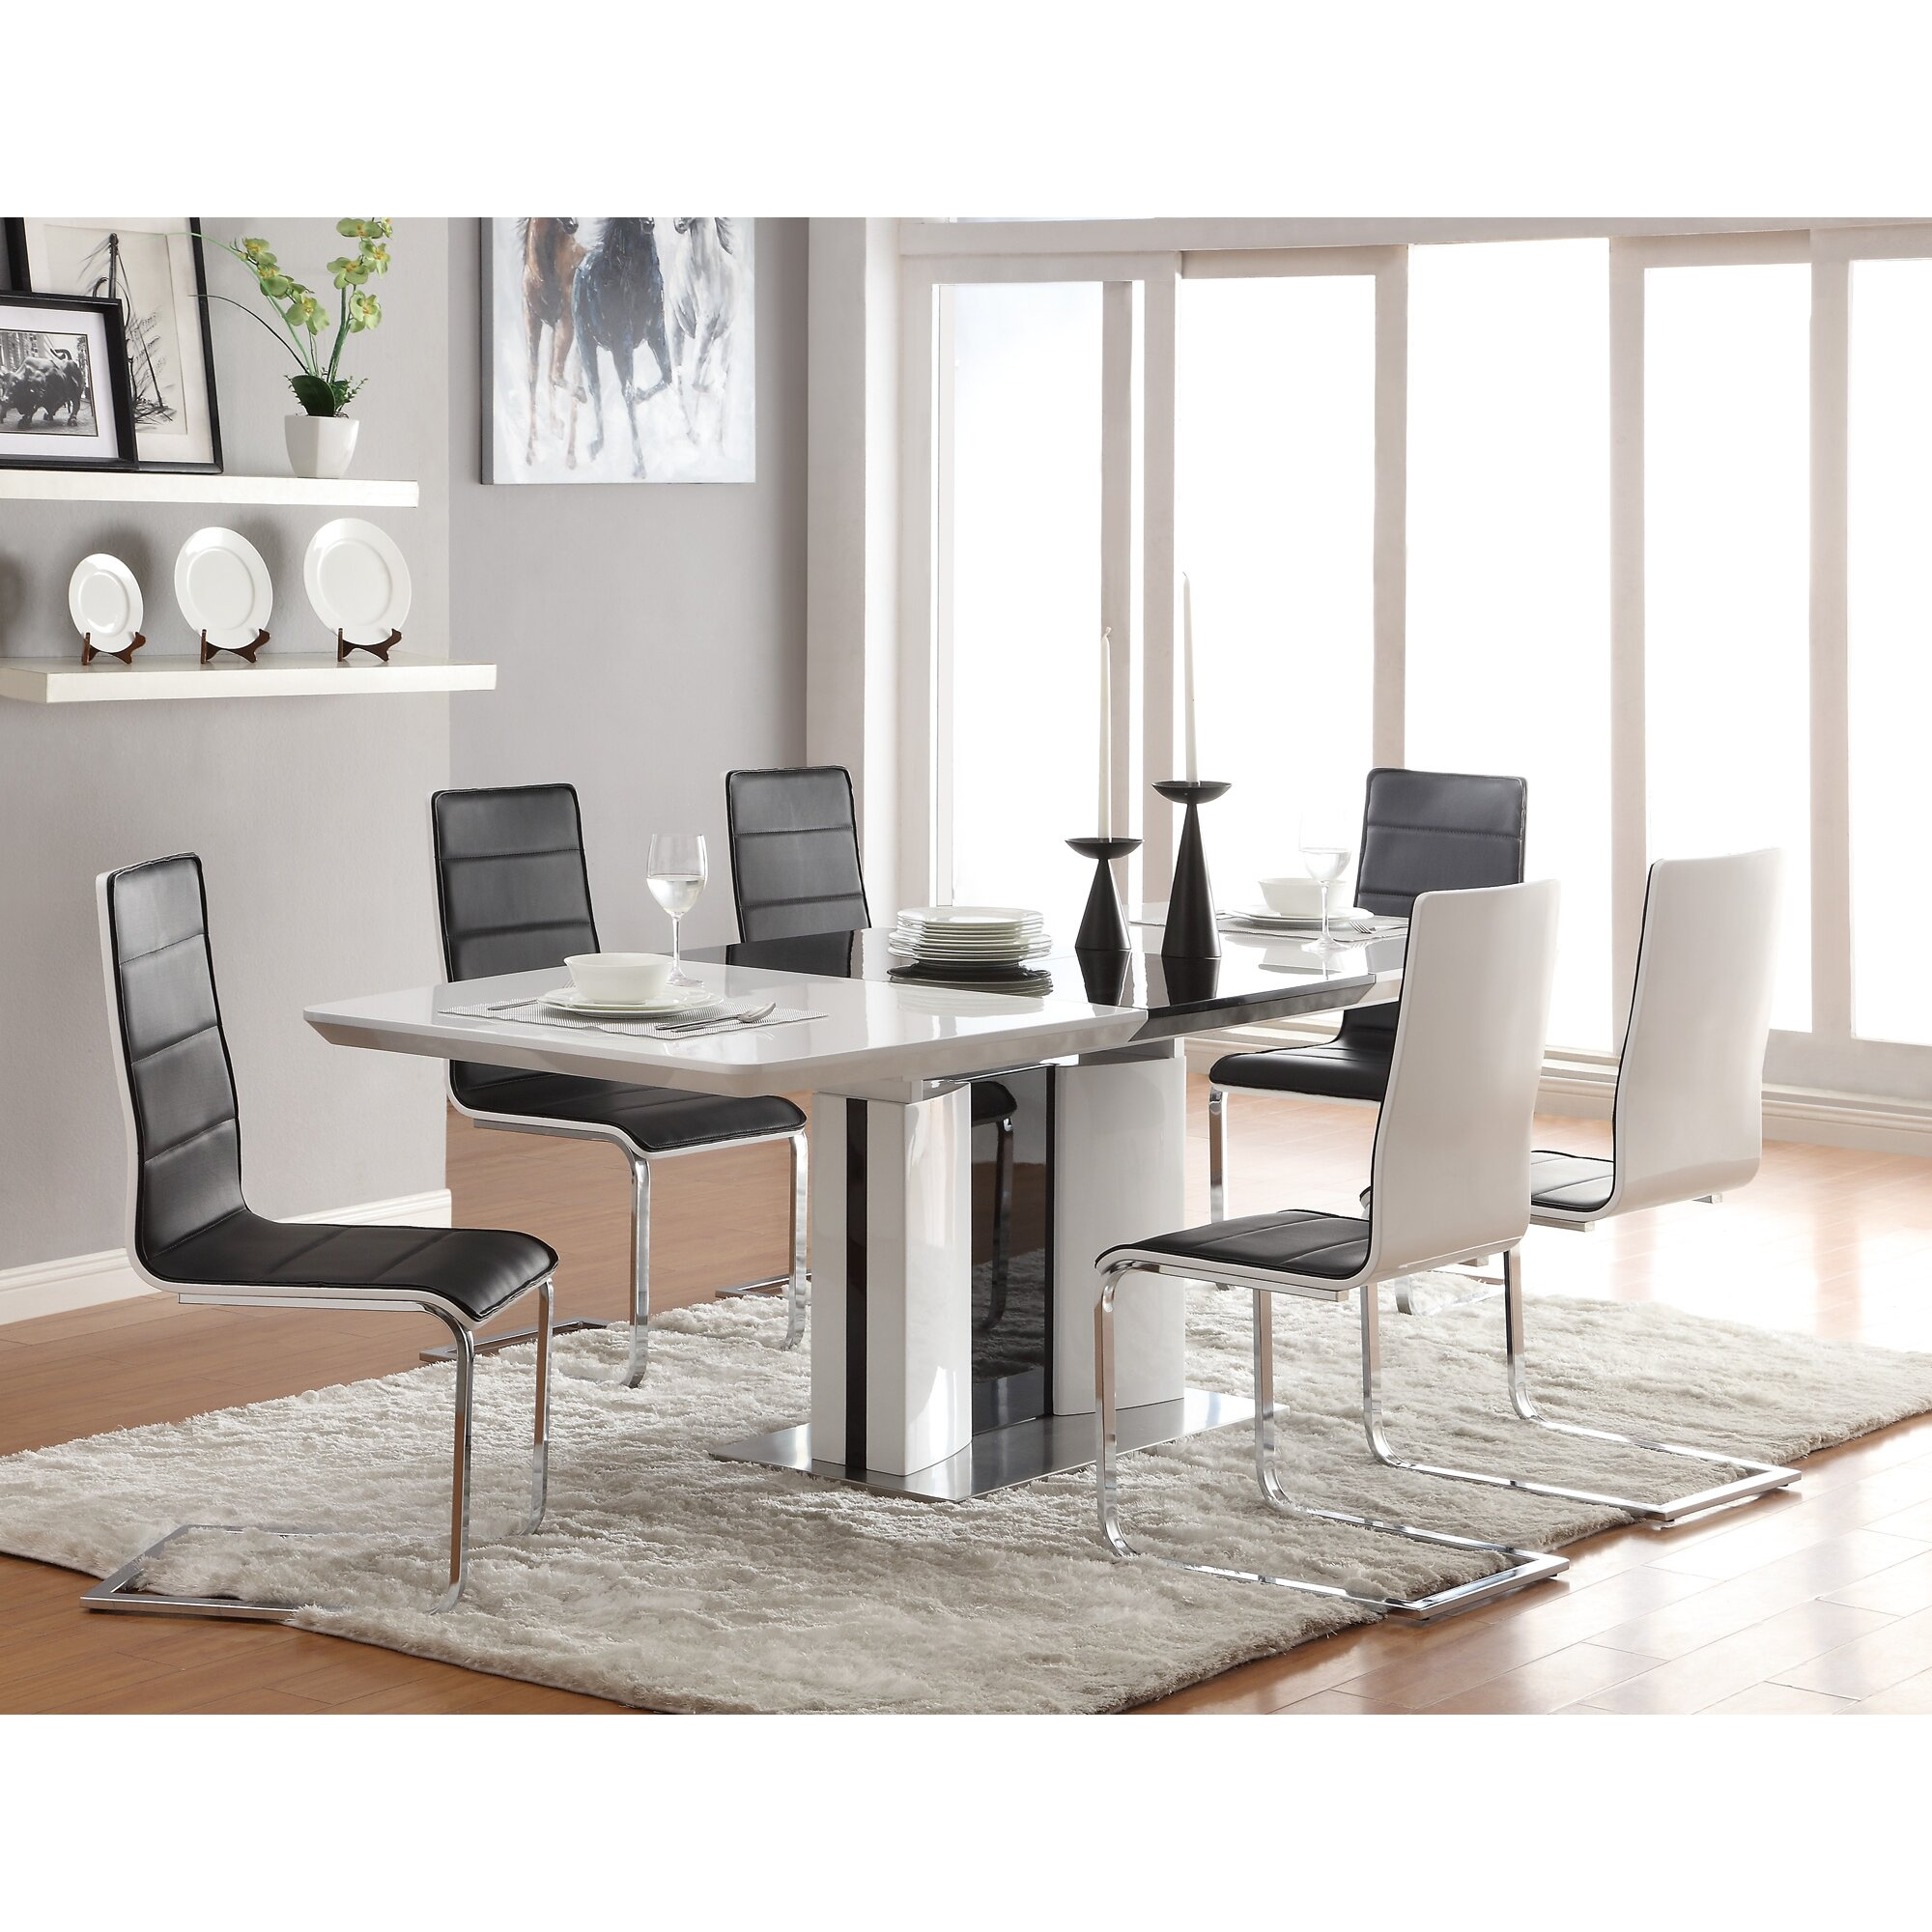 Superior Acrylic Dining Room Tables ~ Ktvb.us